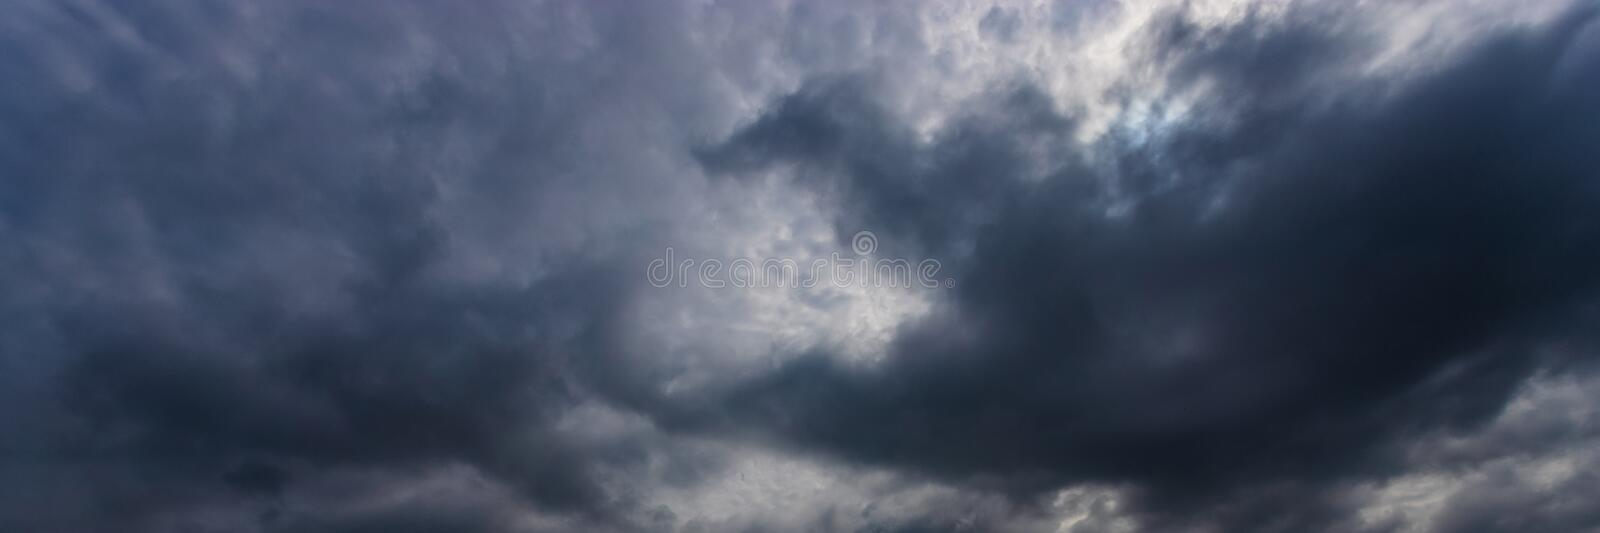 Dramatic Sky Background. Storm clouds in the dark sky. Gloomy Cloudy Landscape. You can use a panoramic image as a web banner or stock photo